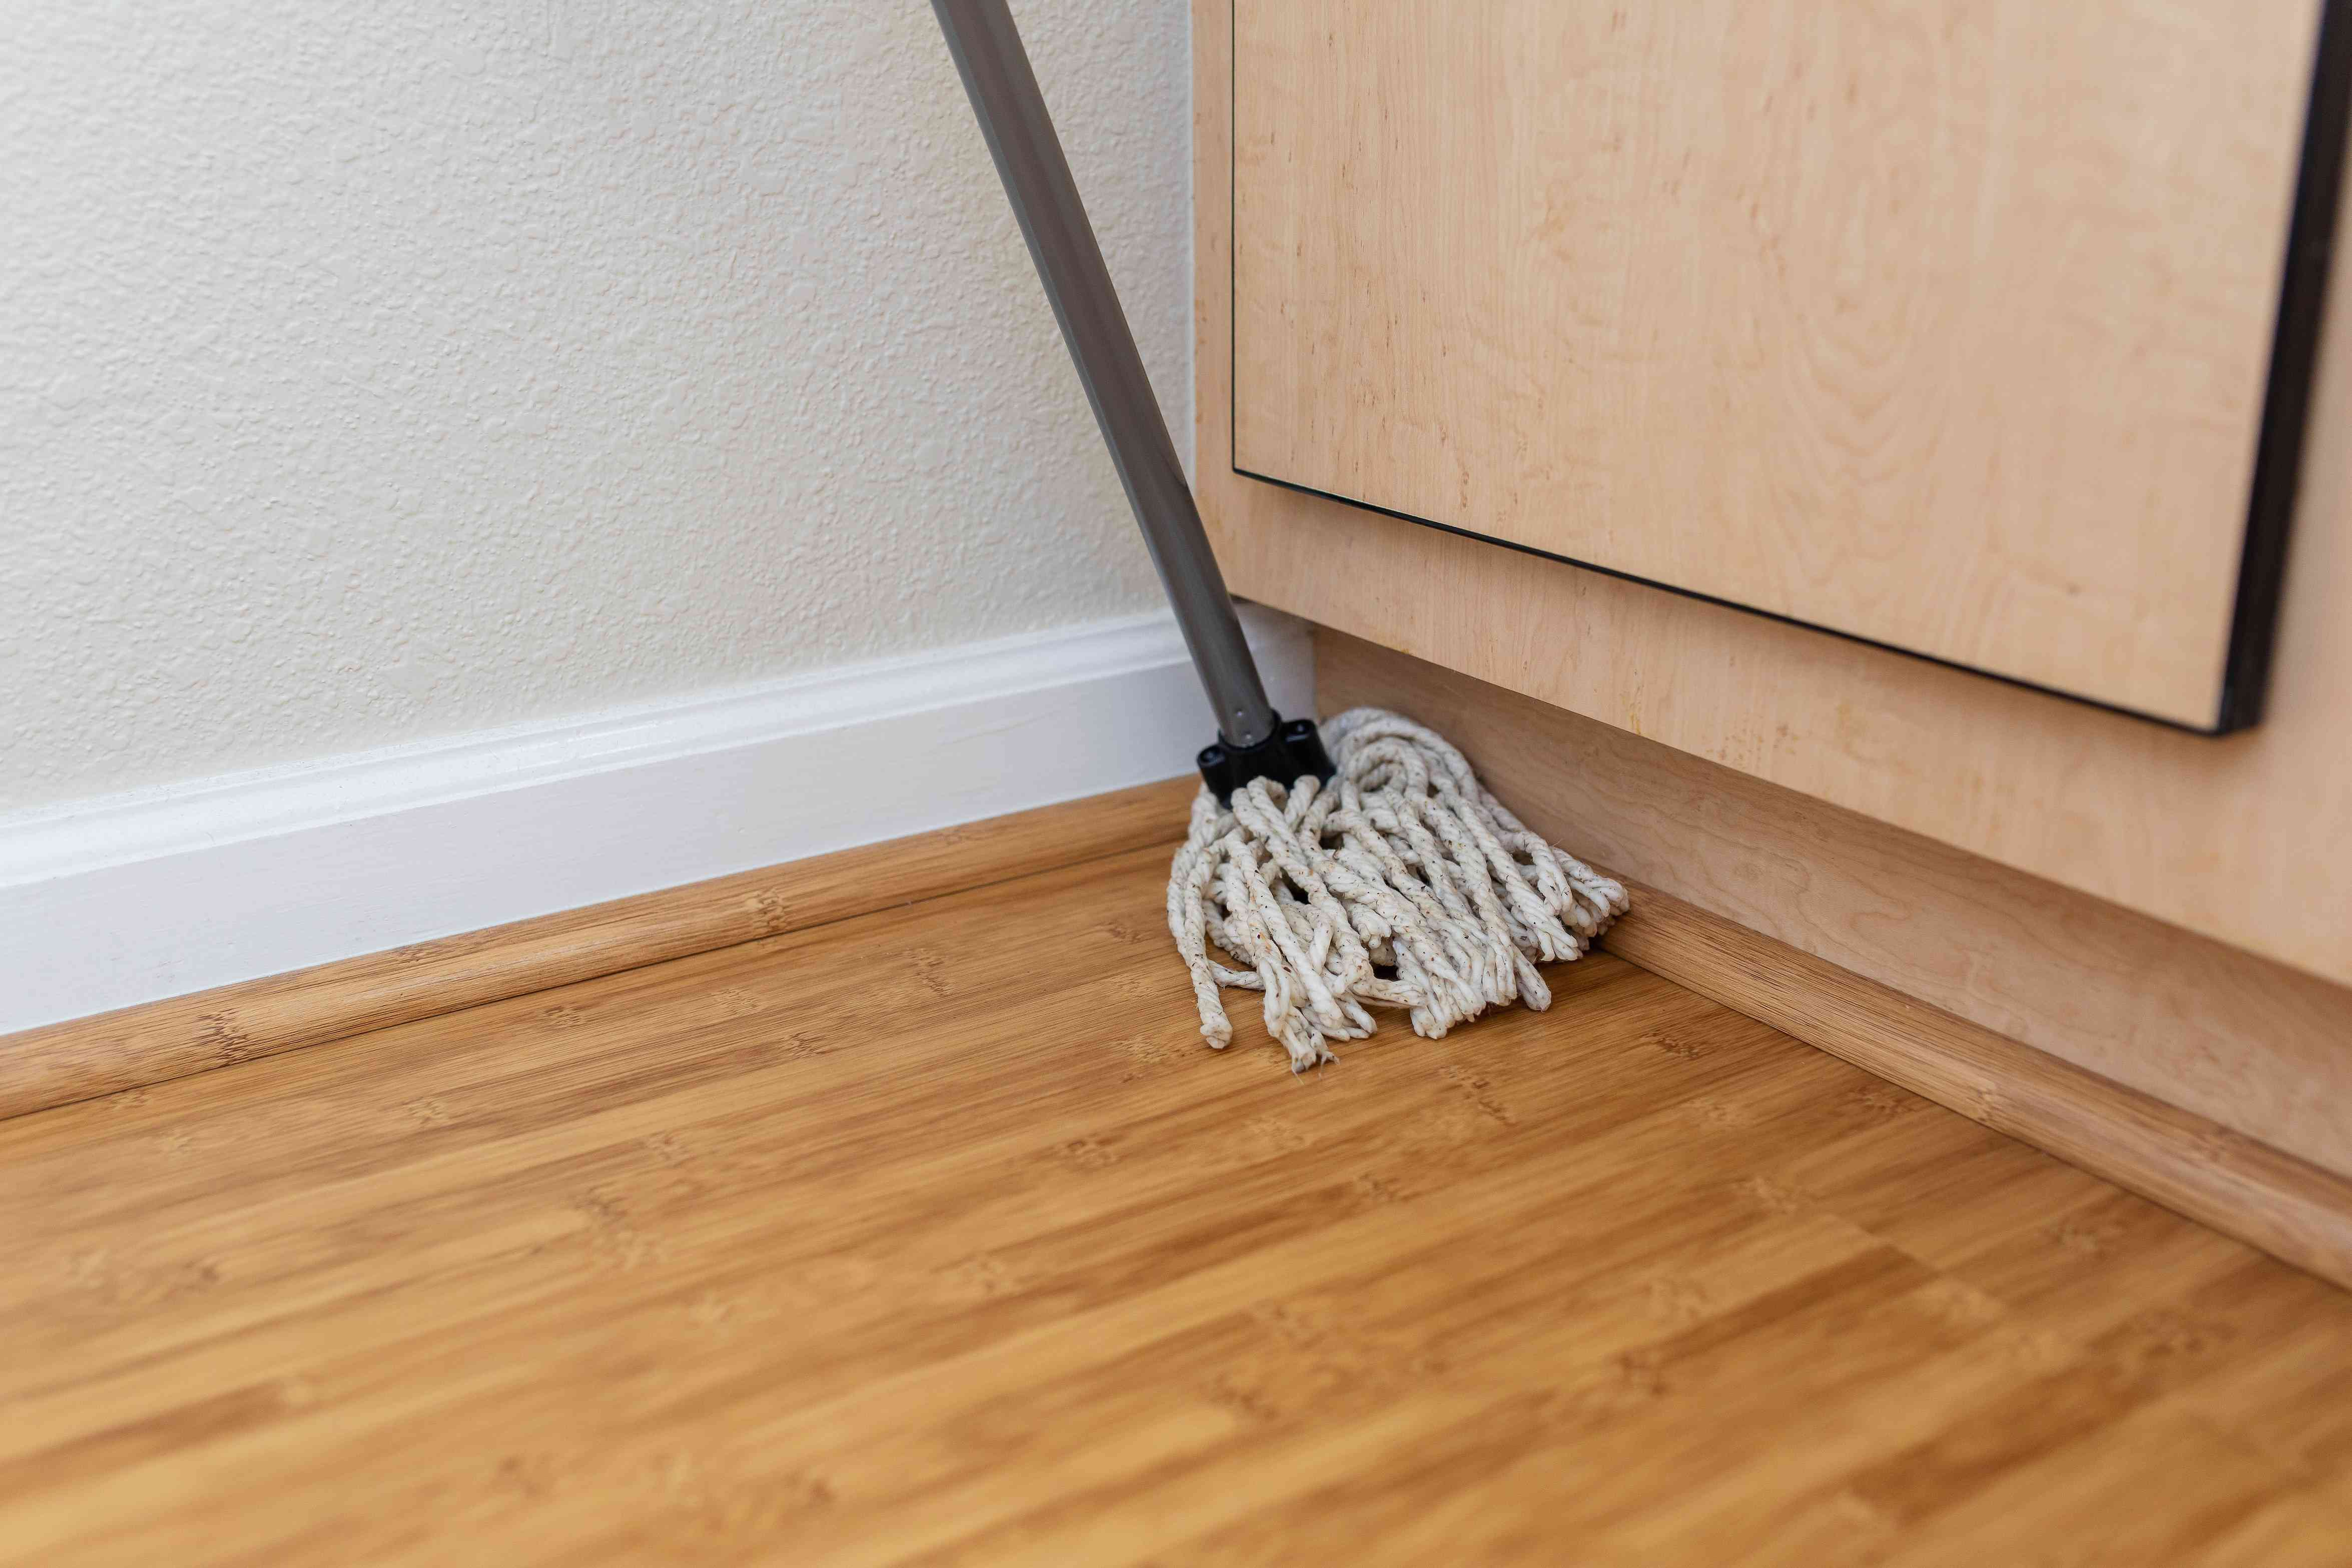 Beginning the mopping process